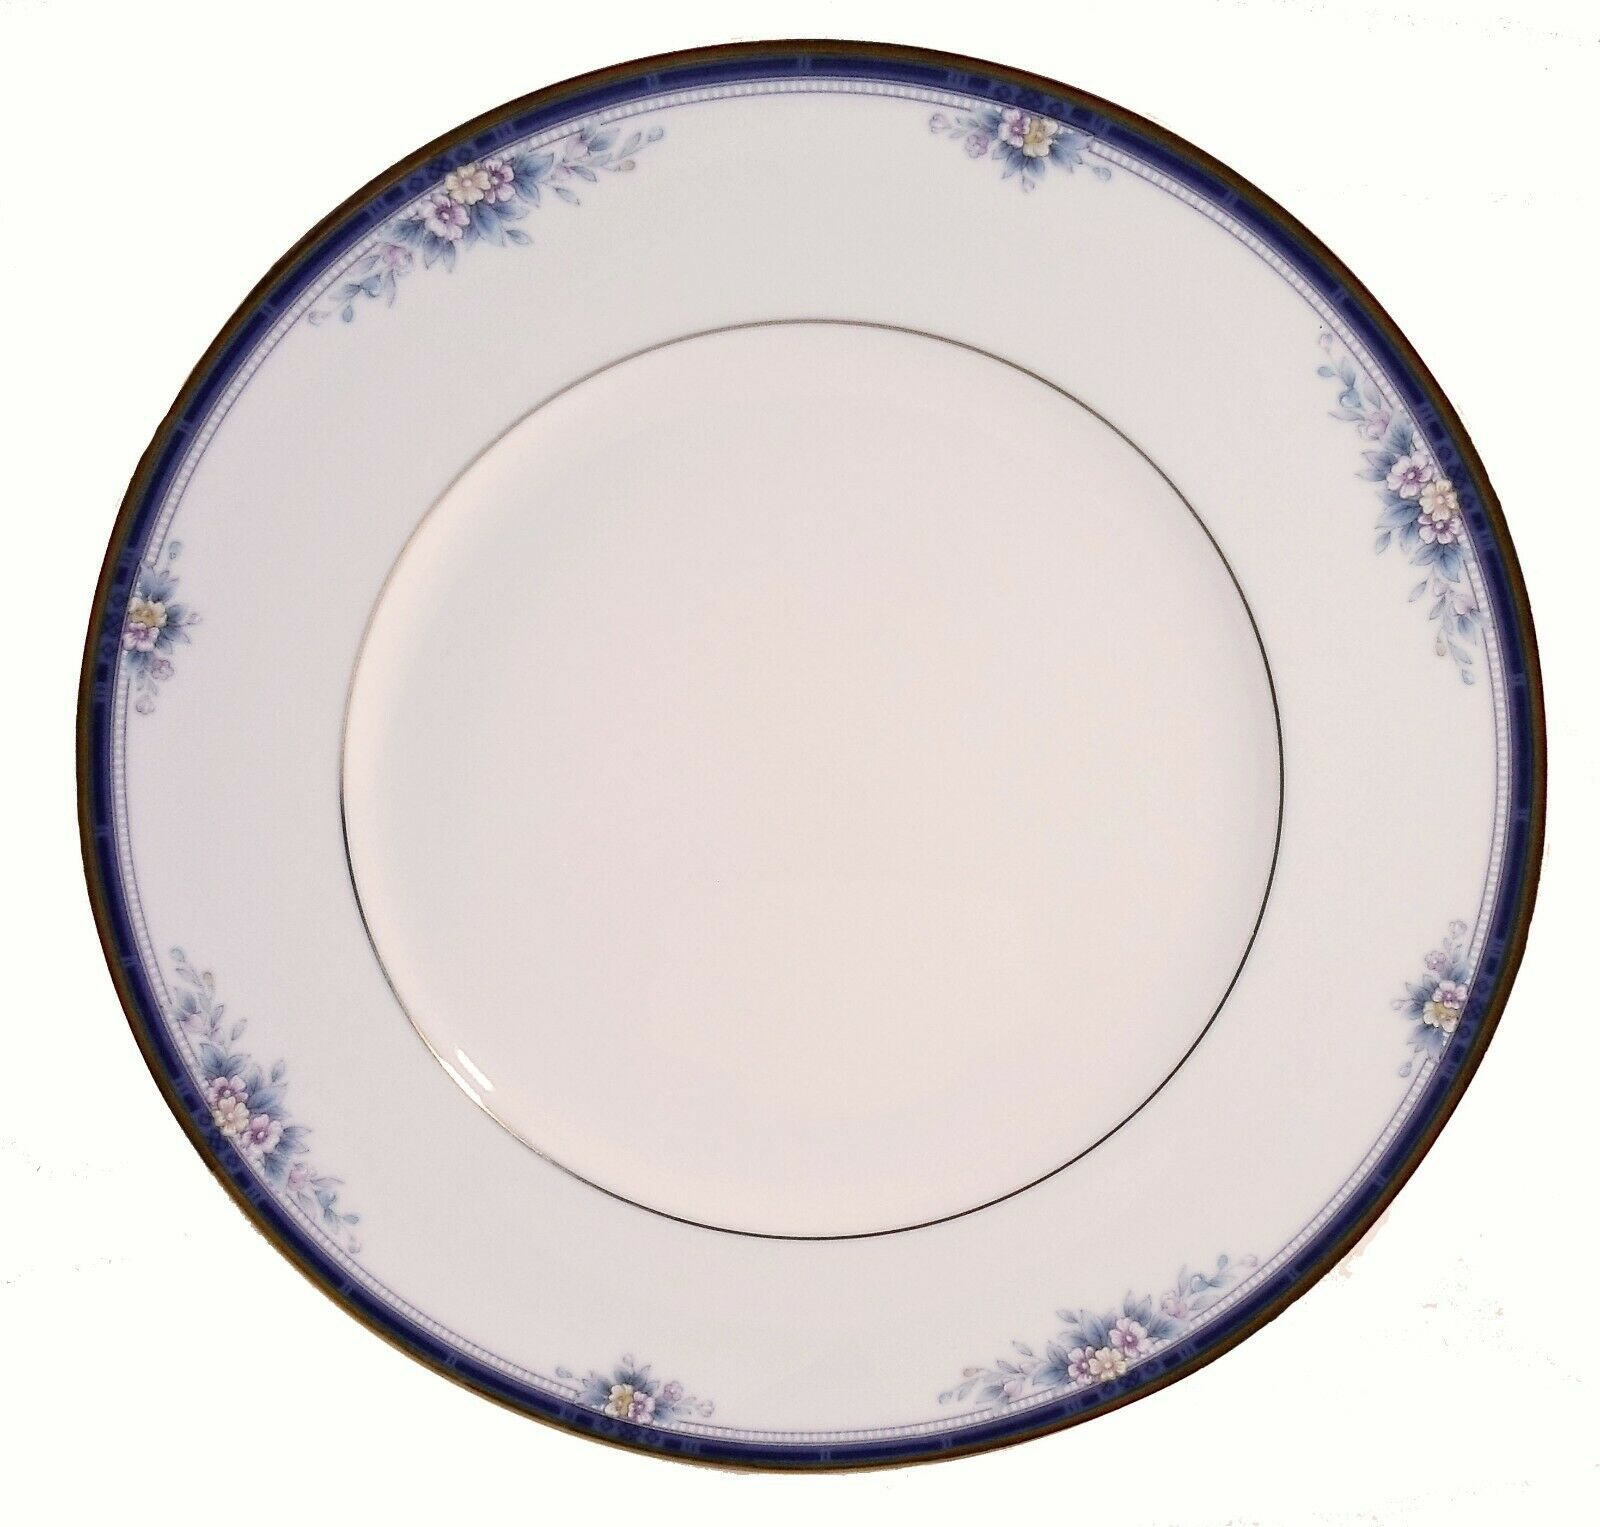 Noritake Ontario 3763 Fine China Dinner Plate - Excellent condition - $7.28